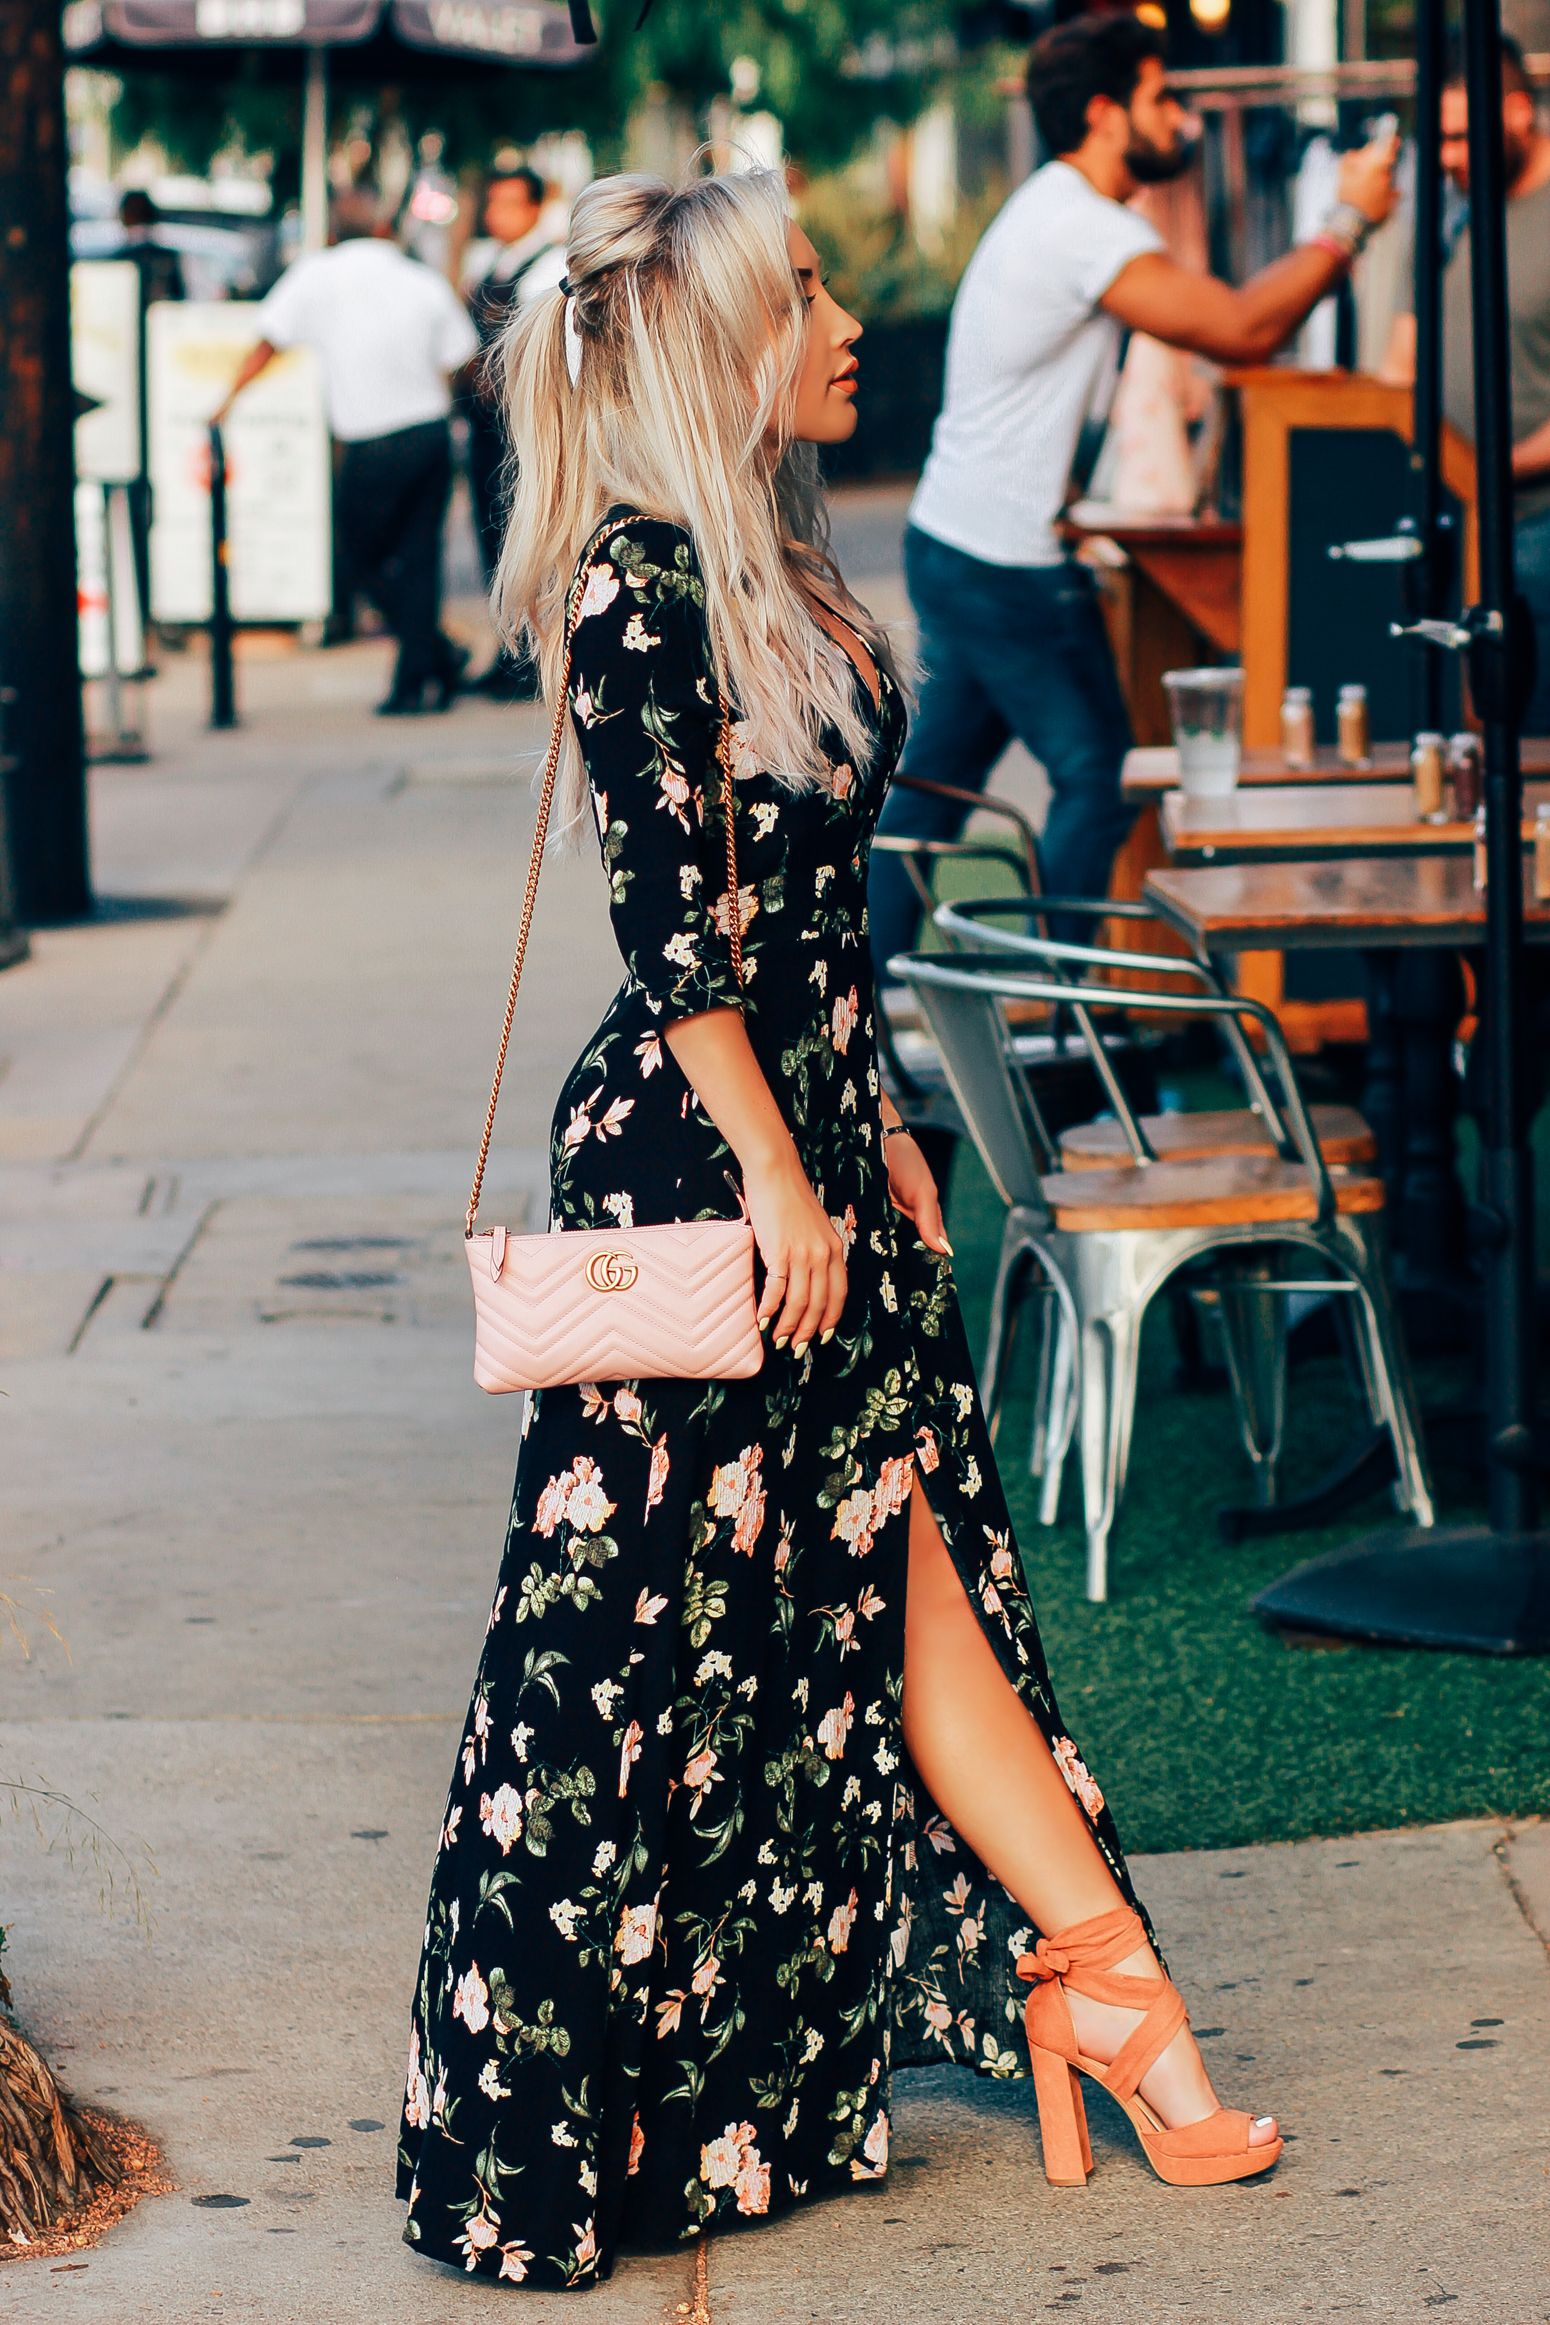 How To Style Black Floral Dress